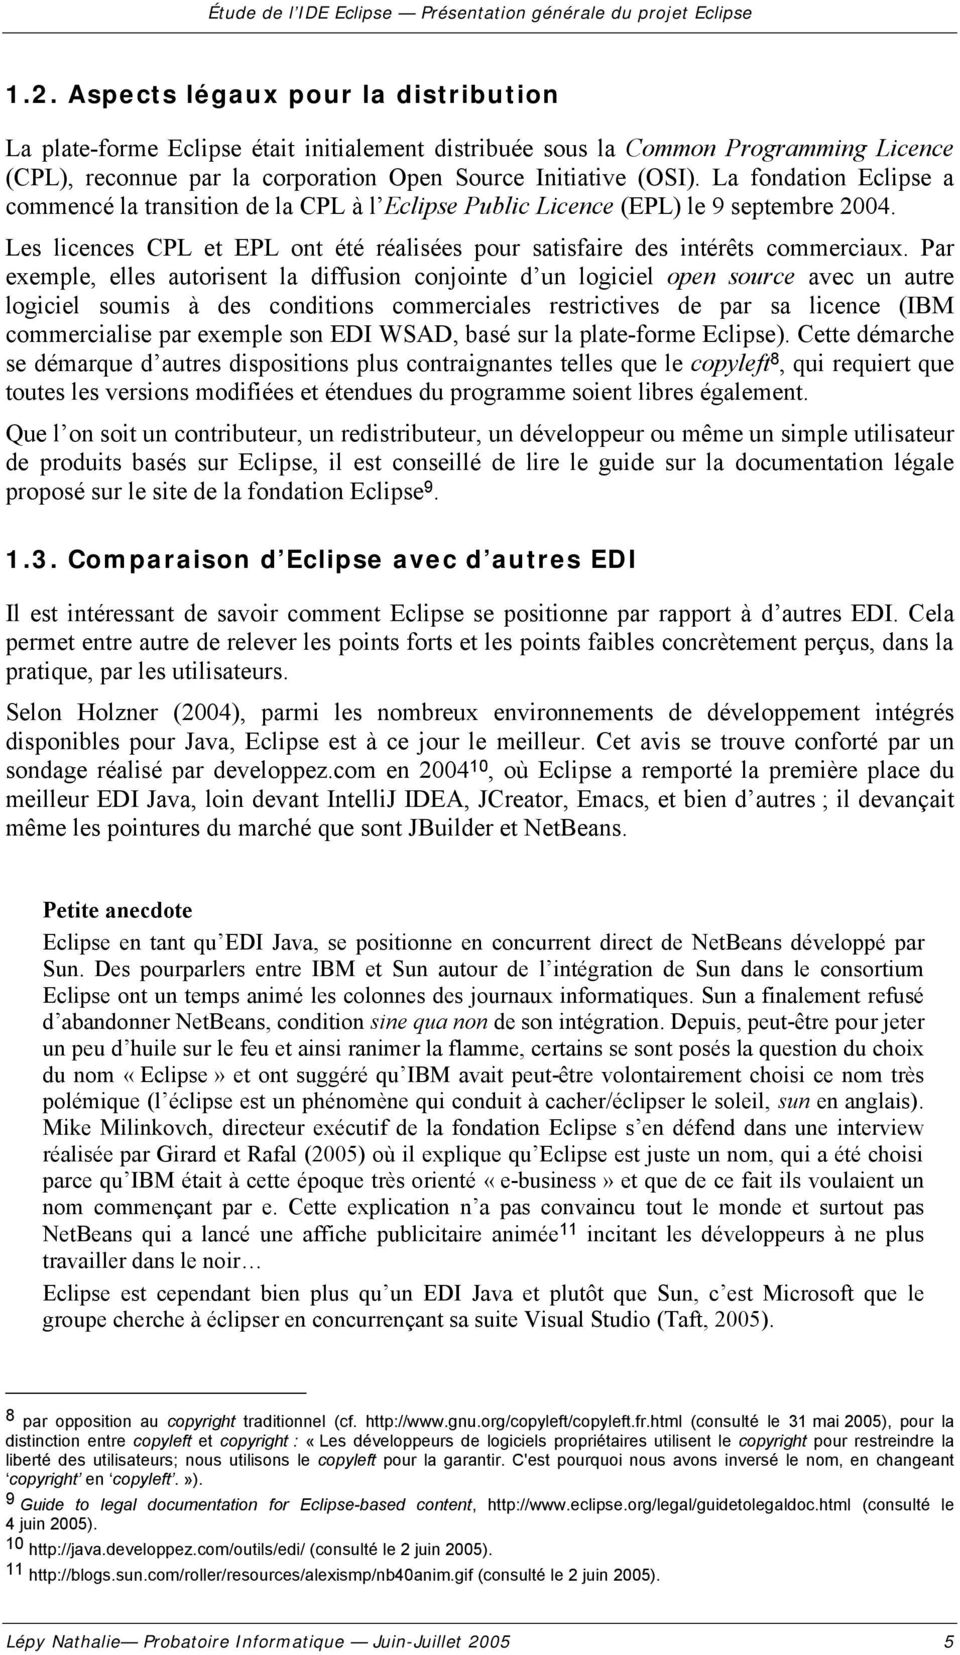 La fondation Eclipse a commencé la transition de la CPL à l Eclipse Public Licence (EPL) le 9 septembre 2004. Les licences CPL et EPL ont été réalisées pour satisfaire des intérêts commerciaux.